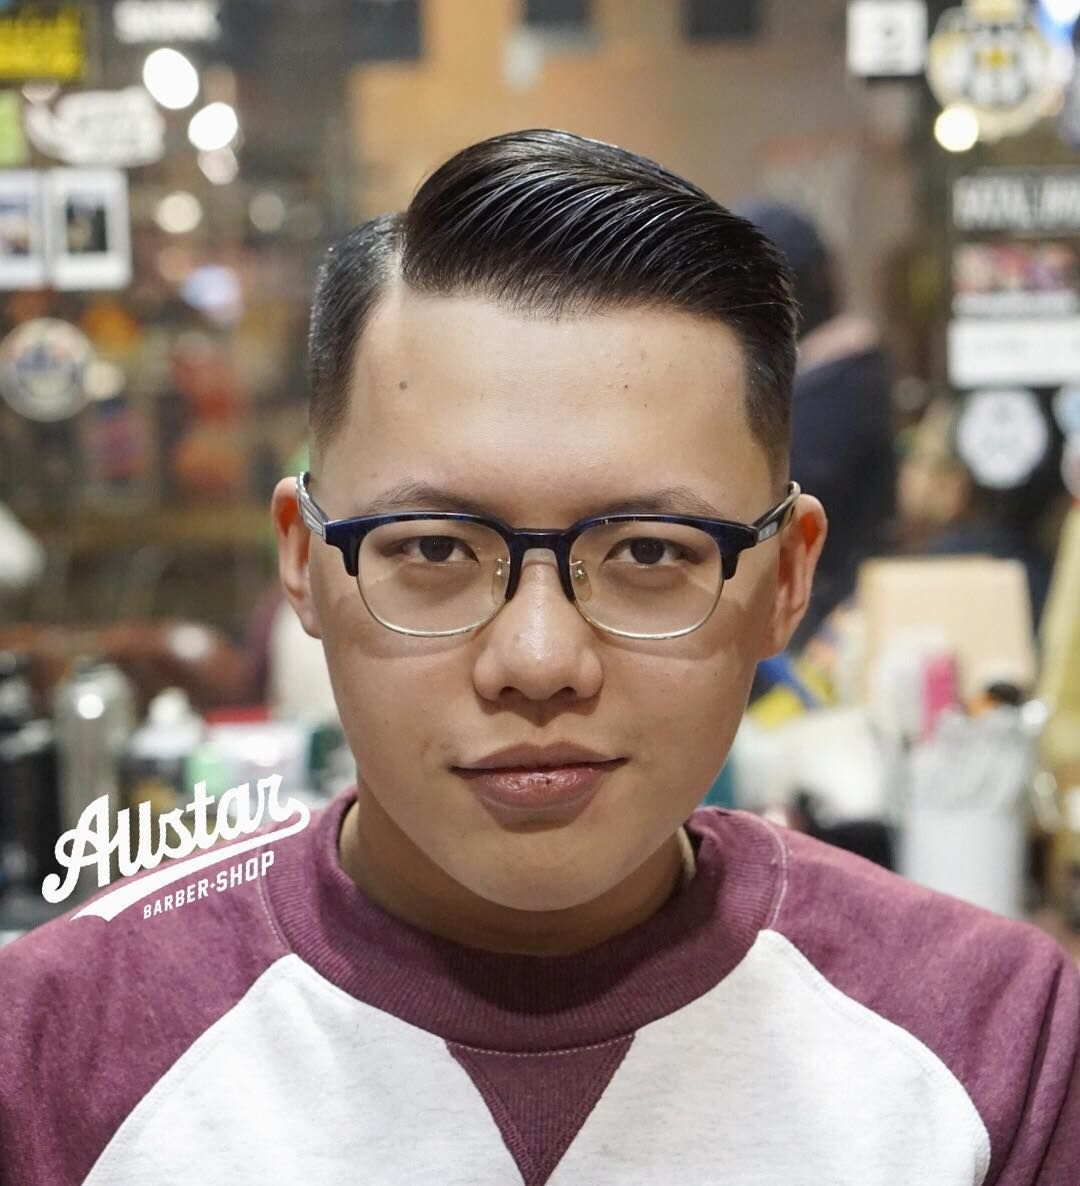 Faded Quiff hairstyles for Chinese man   Hairstyles haircuts, Asian haircut, Slick hairstyles